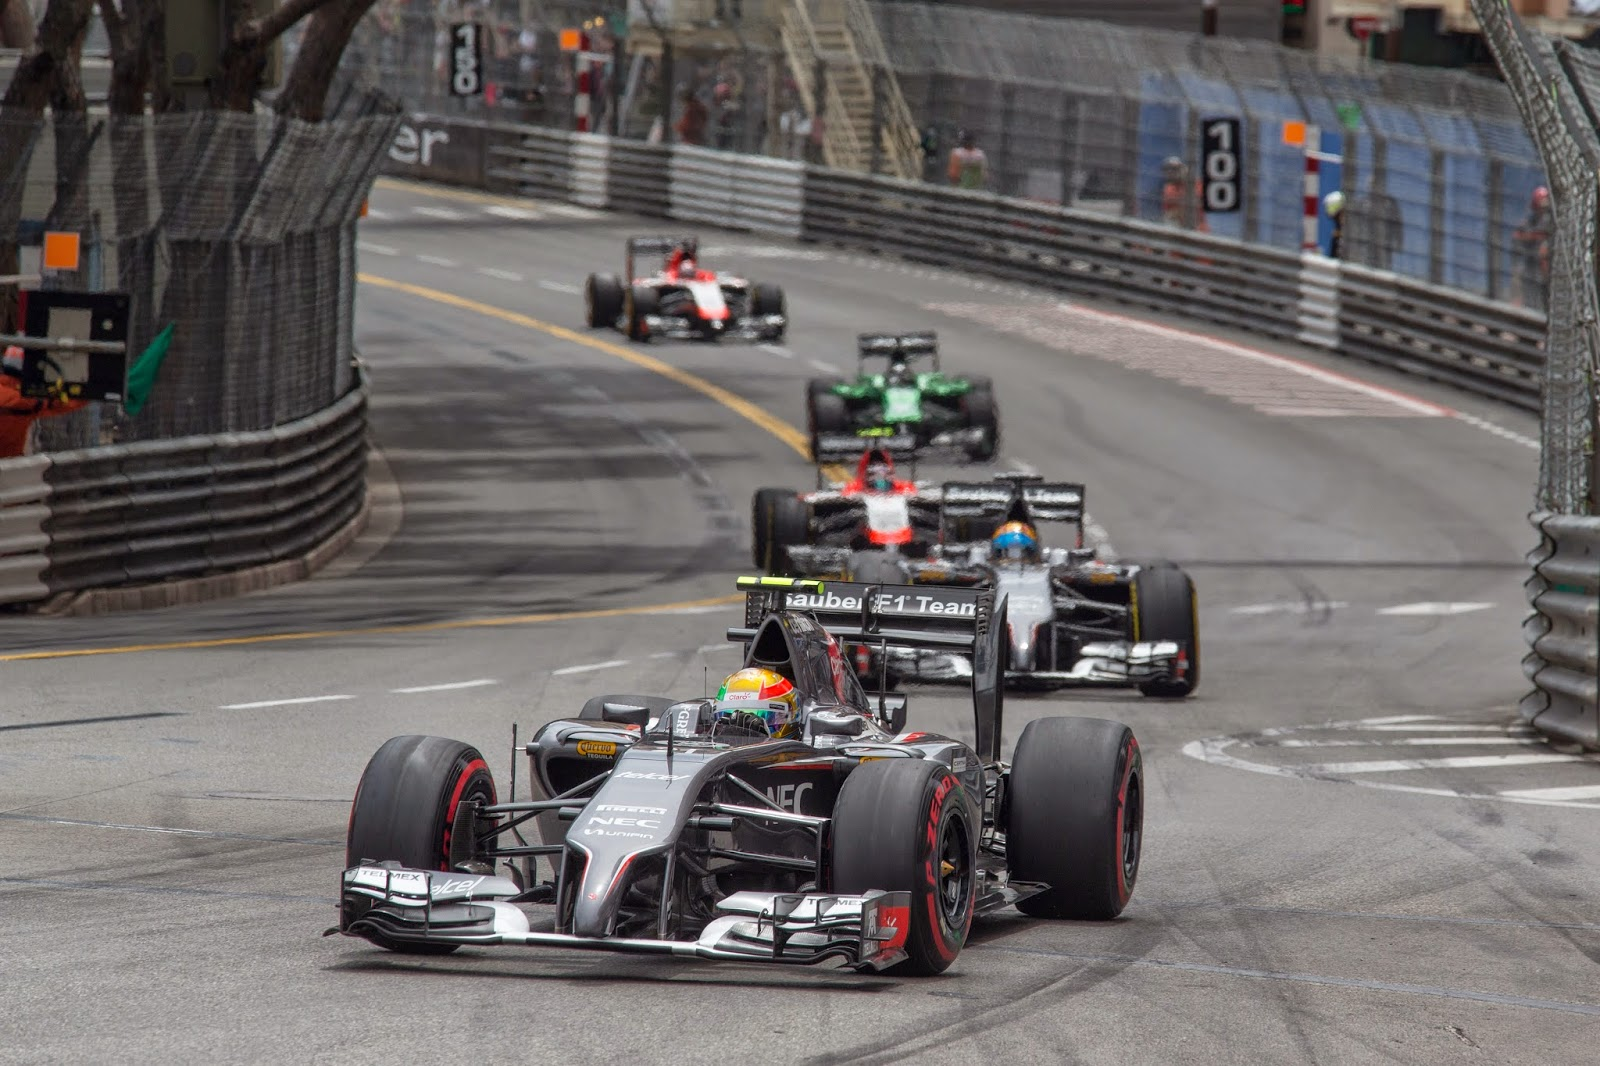 itc racing sauber f1 team grand prix de monaco race sunday 25 may 2014 circuit de monaco. Black Bedroom Furniture Sets. Home Design Ideas